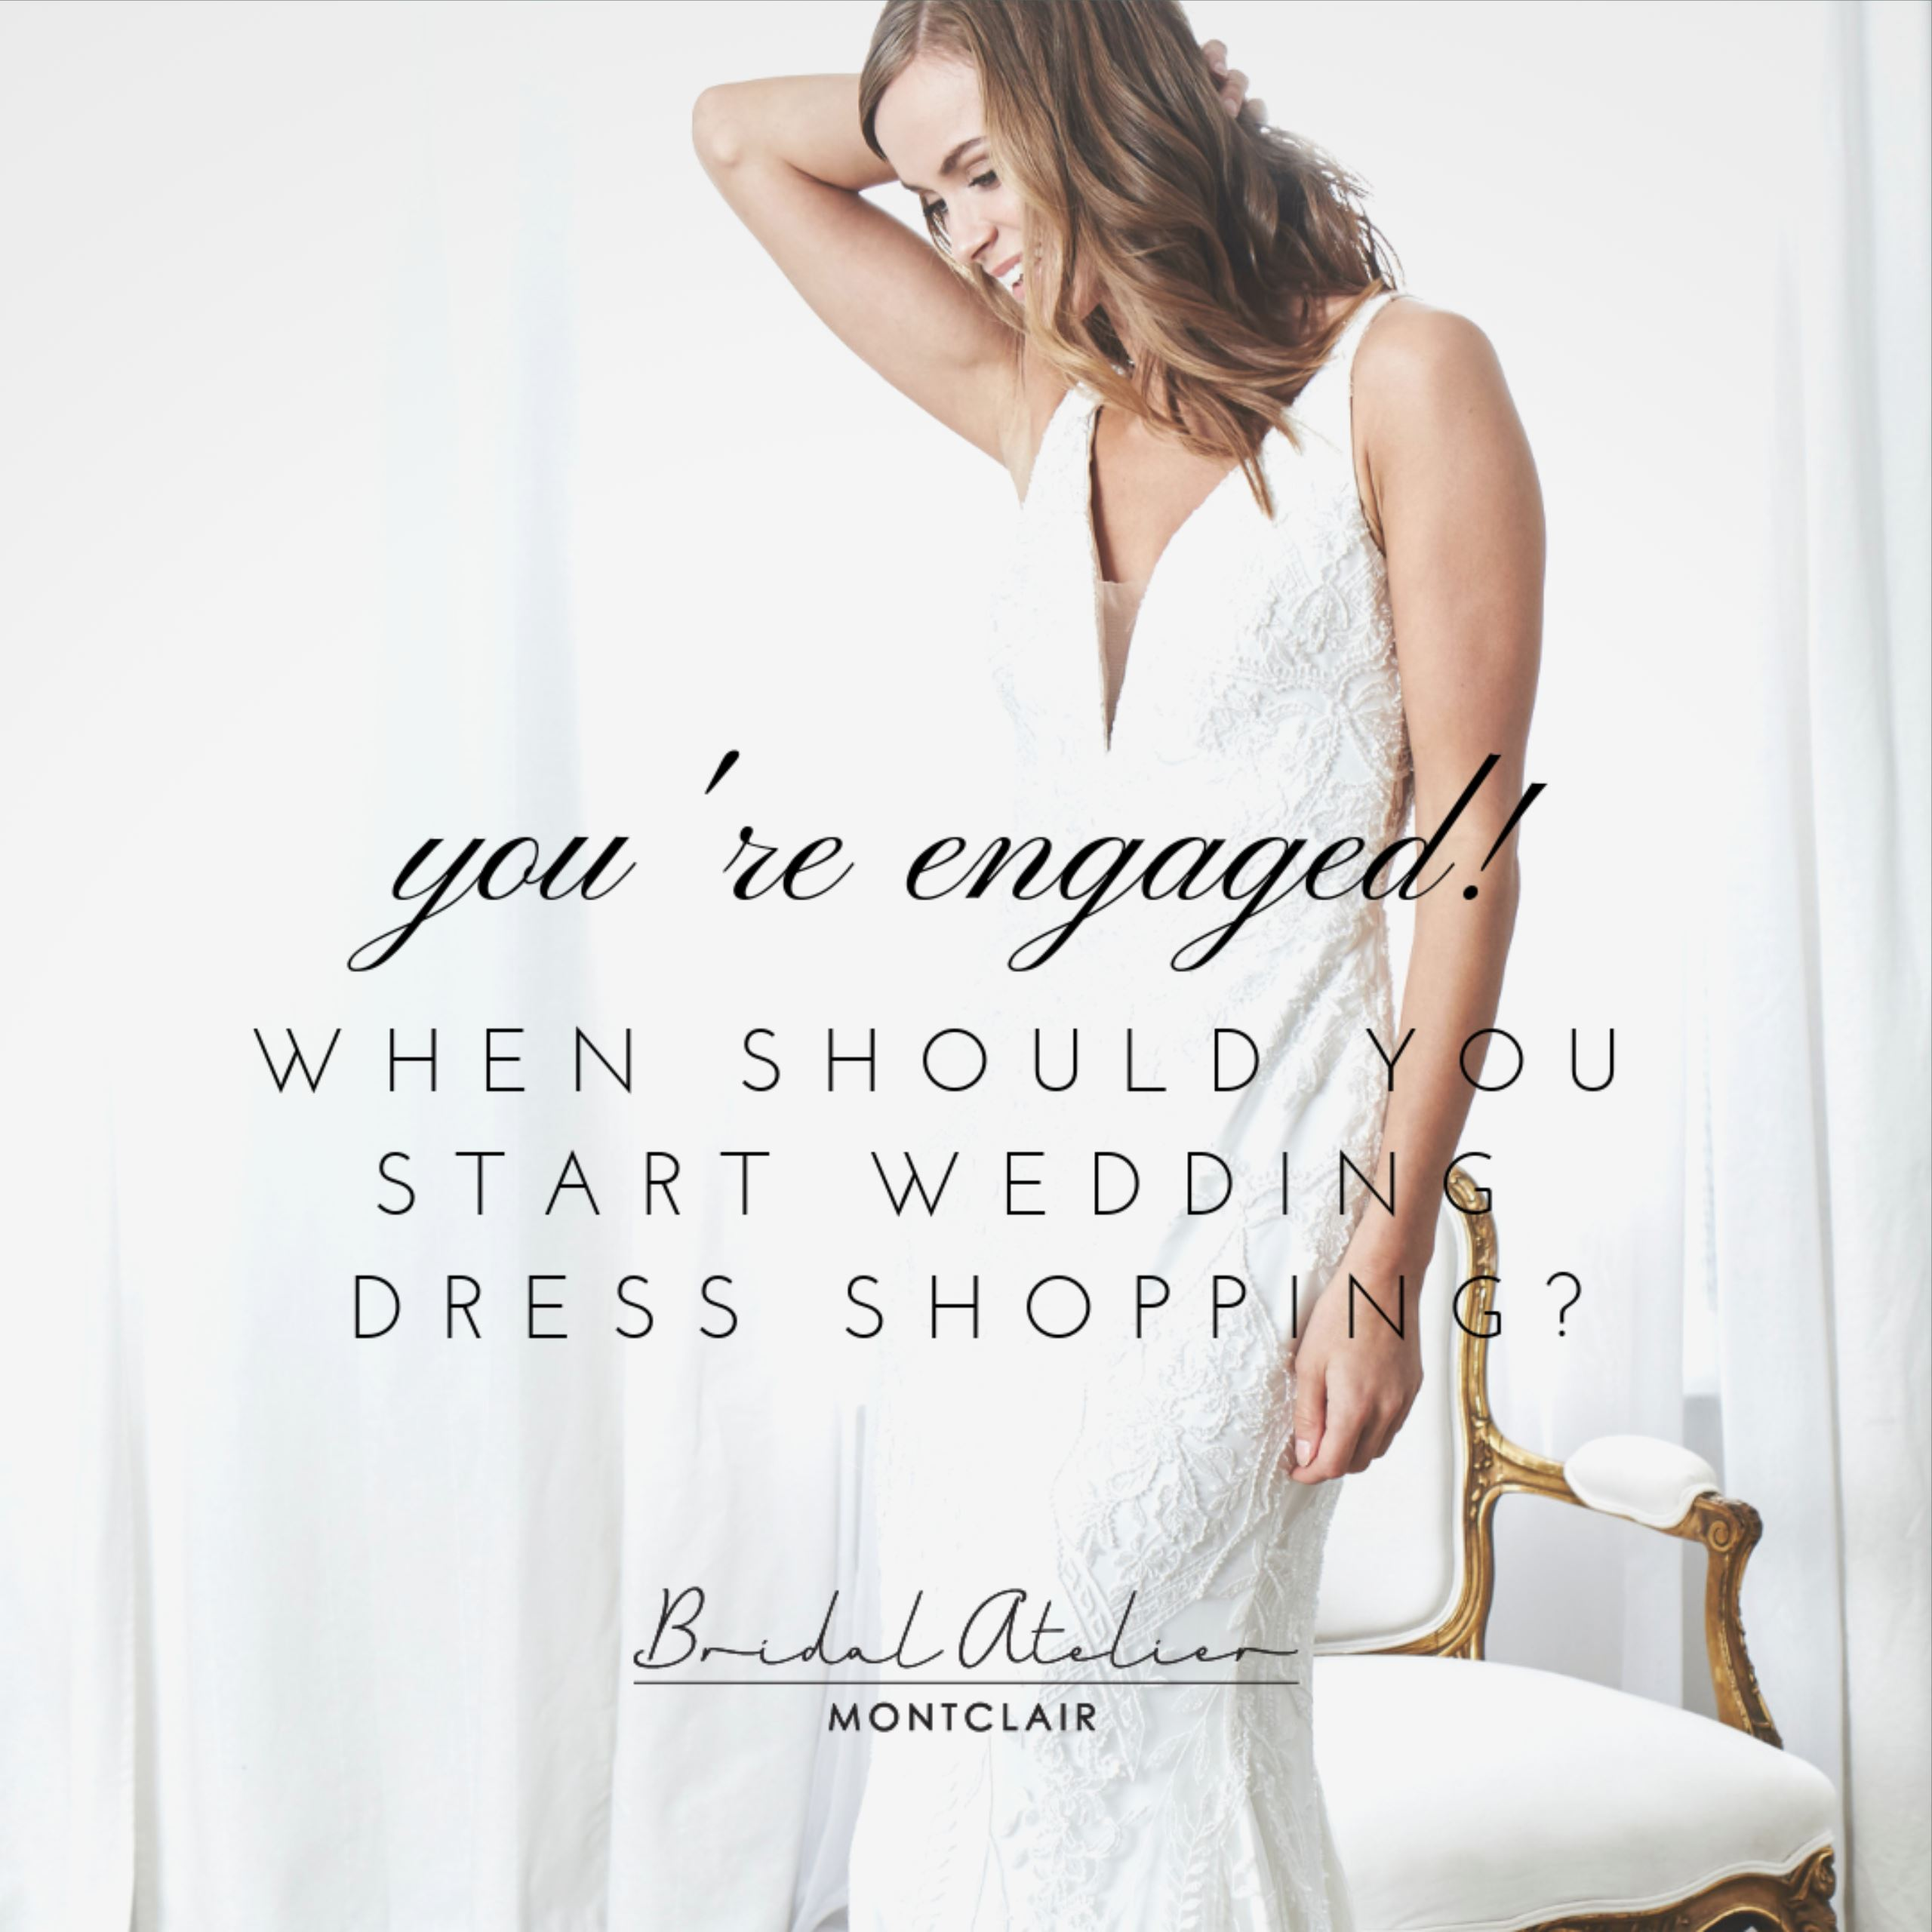 YOU'RE ENGAGED! WHEN SHOULD YOU START WEDDING DRESS SHOPPING?. Desktop Image